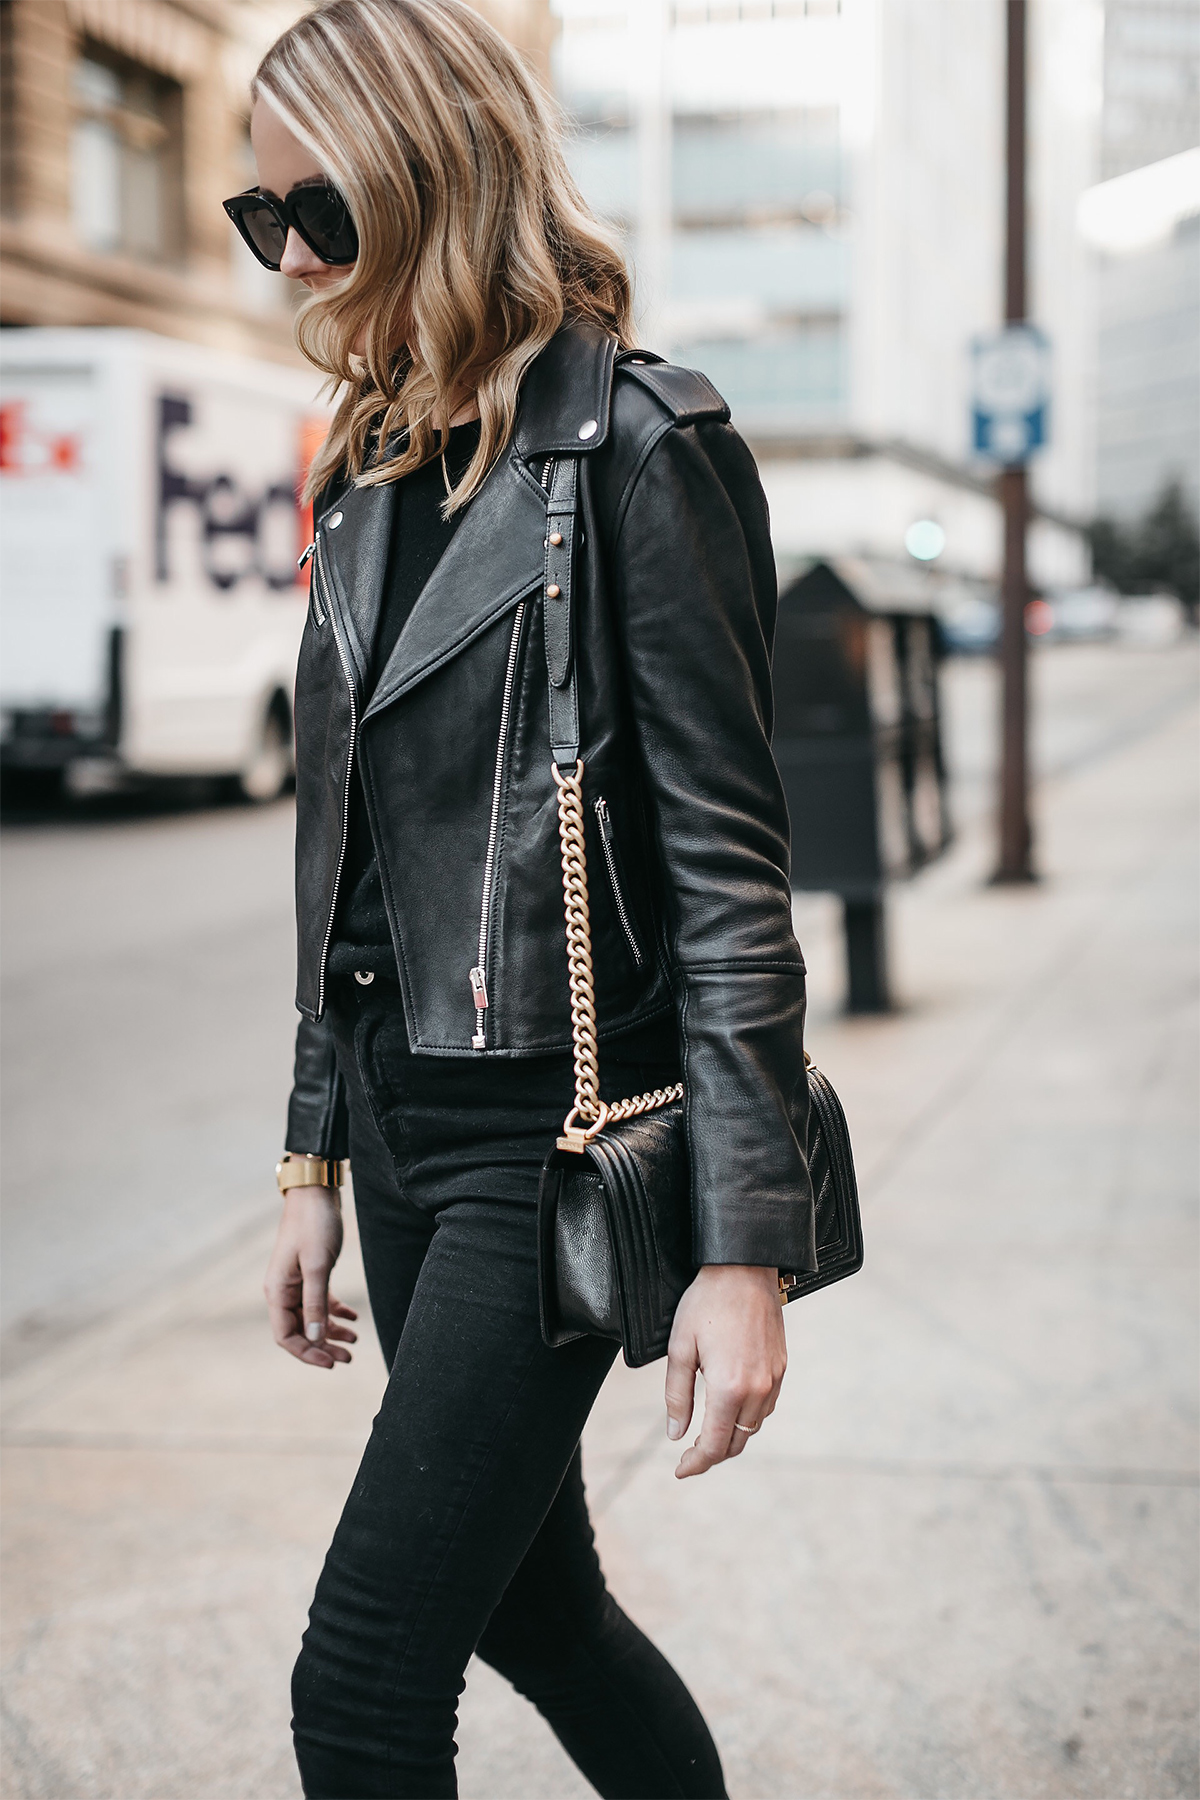 Blonde Woman Wearing Club Monaco Black Leather Jacket Black Sweater Black Skinny Jeans Fashion Jackson Dallas Blogger Fashion Blogger Street Style